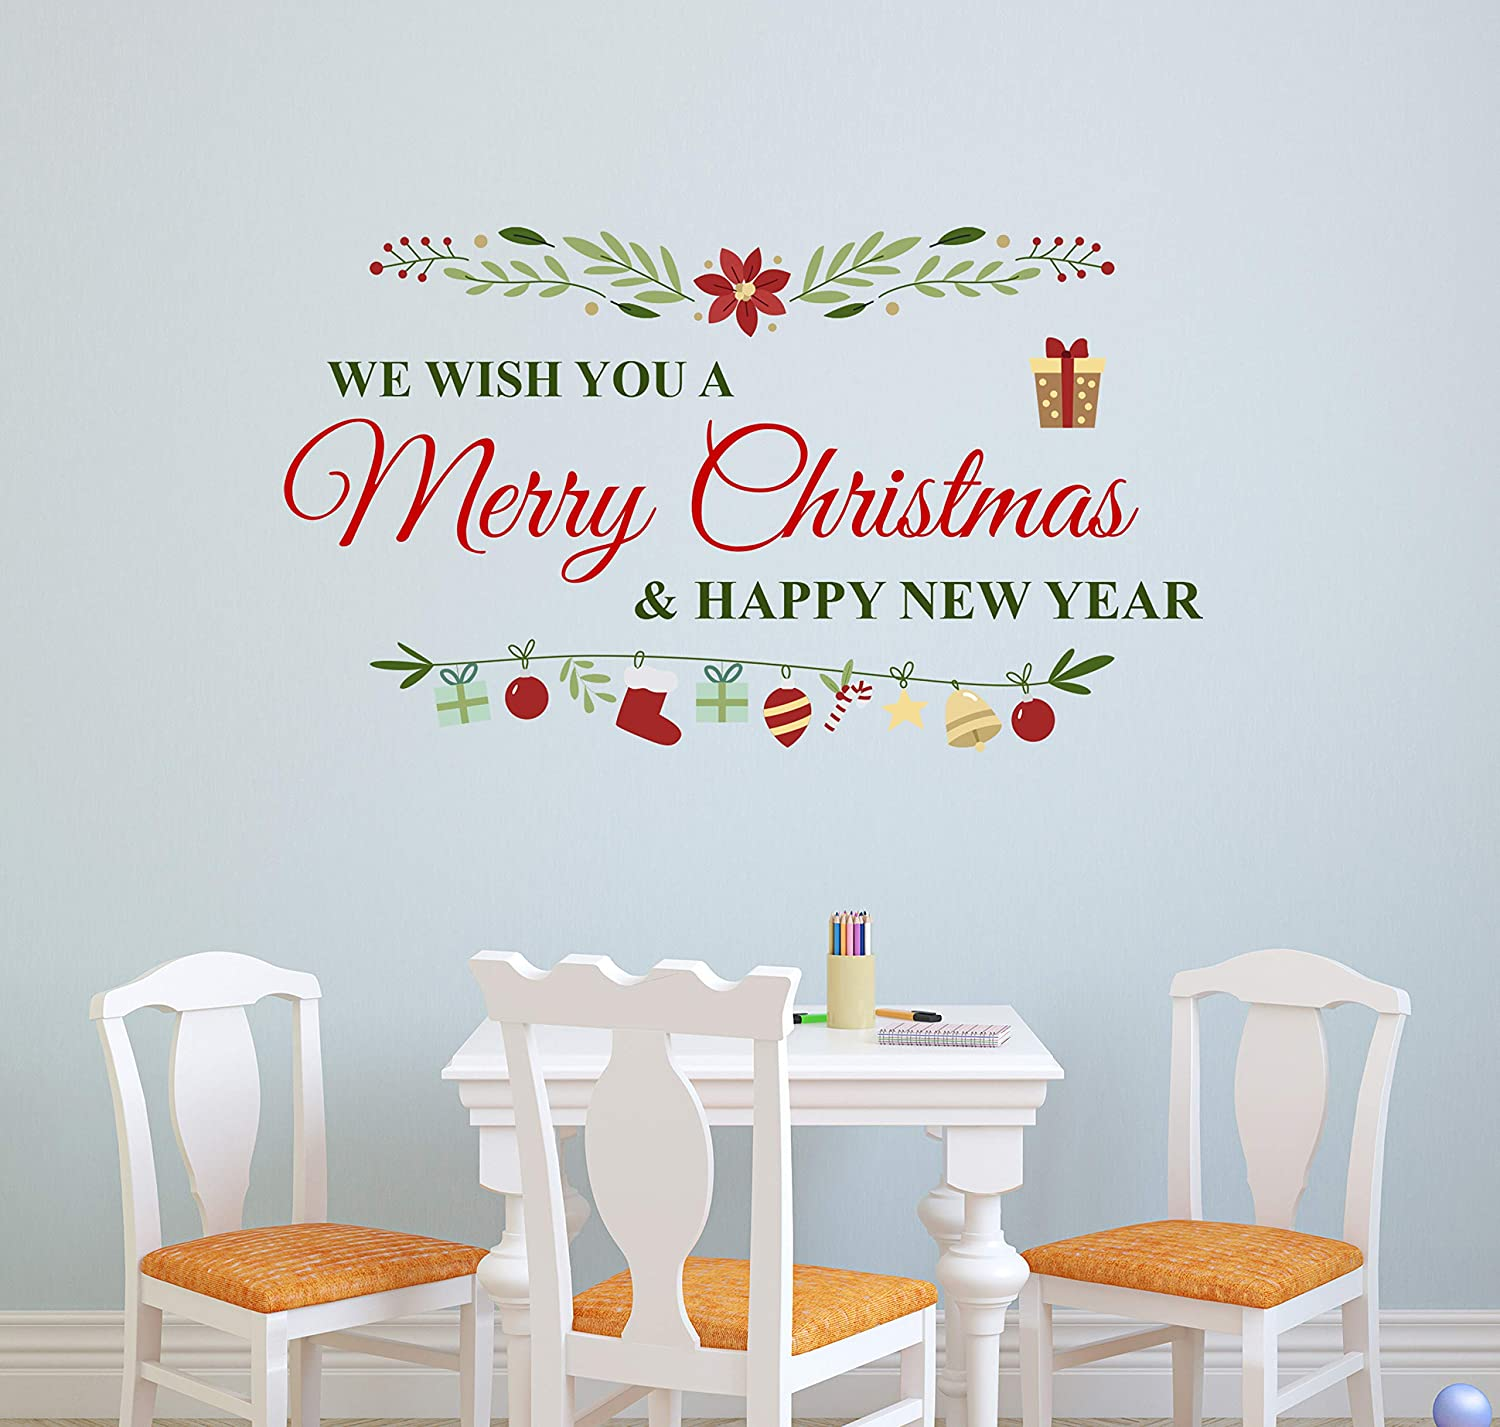 Merry Christmas & Happy New Year Wall Decal Christmas Wall Decor Removable Vinyl Art Mural Living Room Door Sticker (22